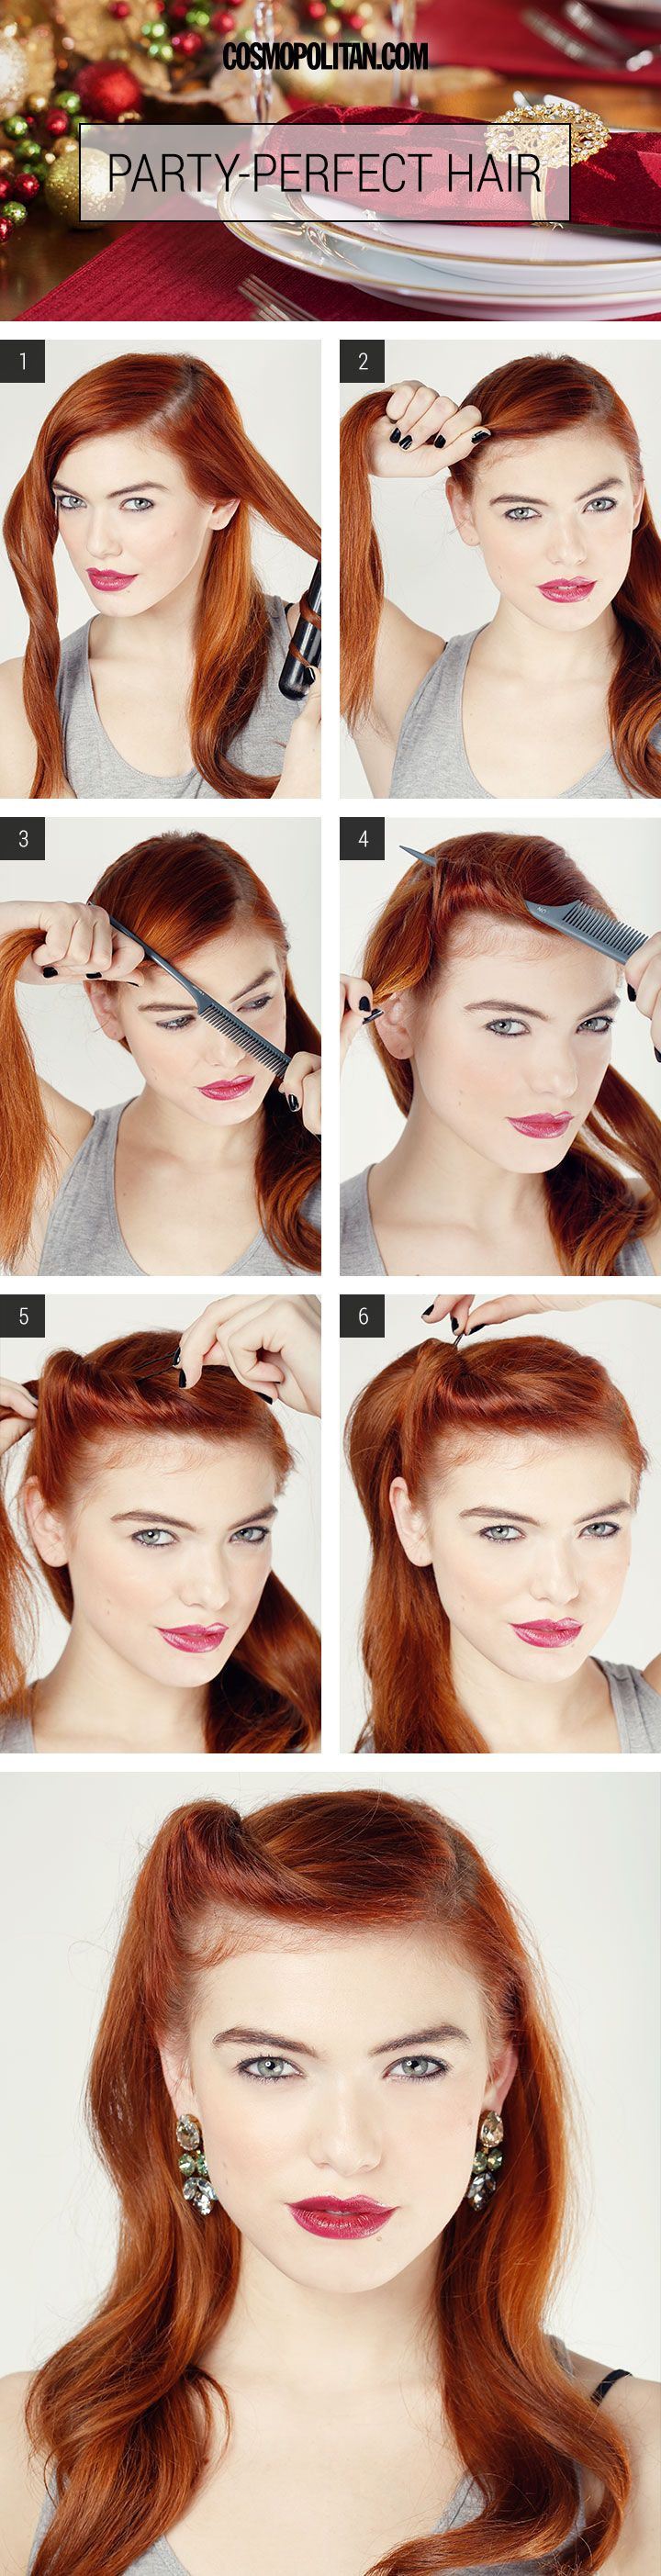 Hair How To Party Perfect Glam Roll Victory Rolls Tutorials